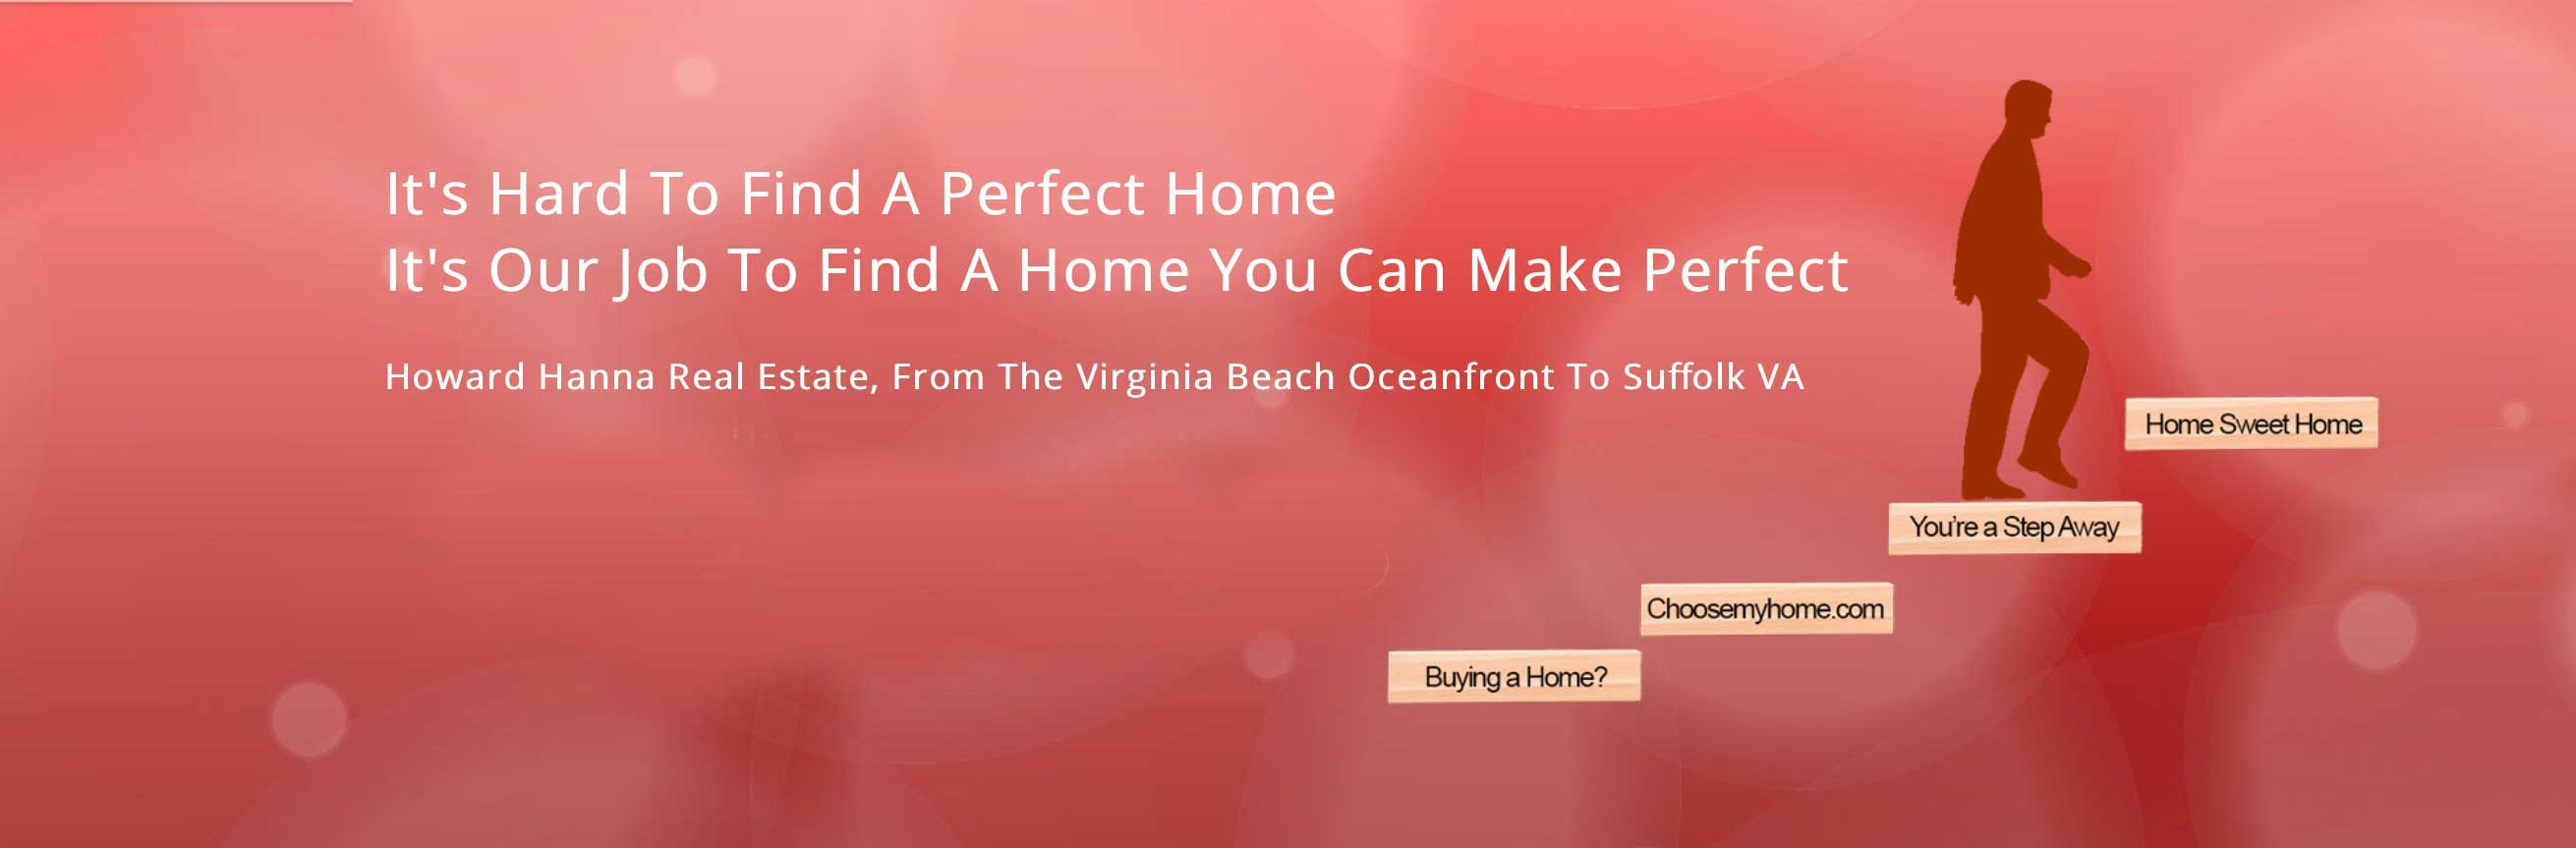 Search Virginia Beach Homes for Sale, Oceanfront Homes, Coastal Virginia, Home Buyers